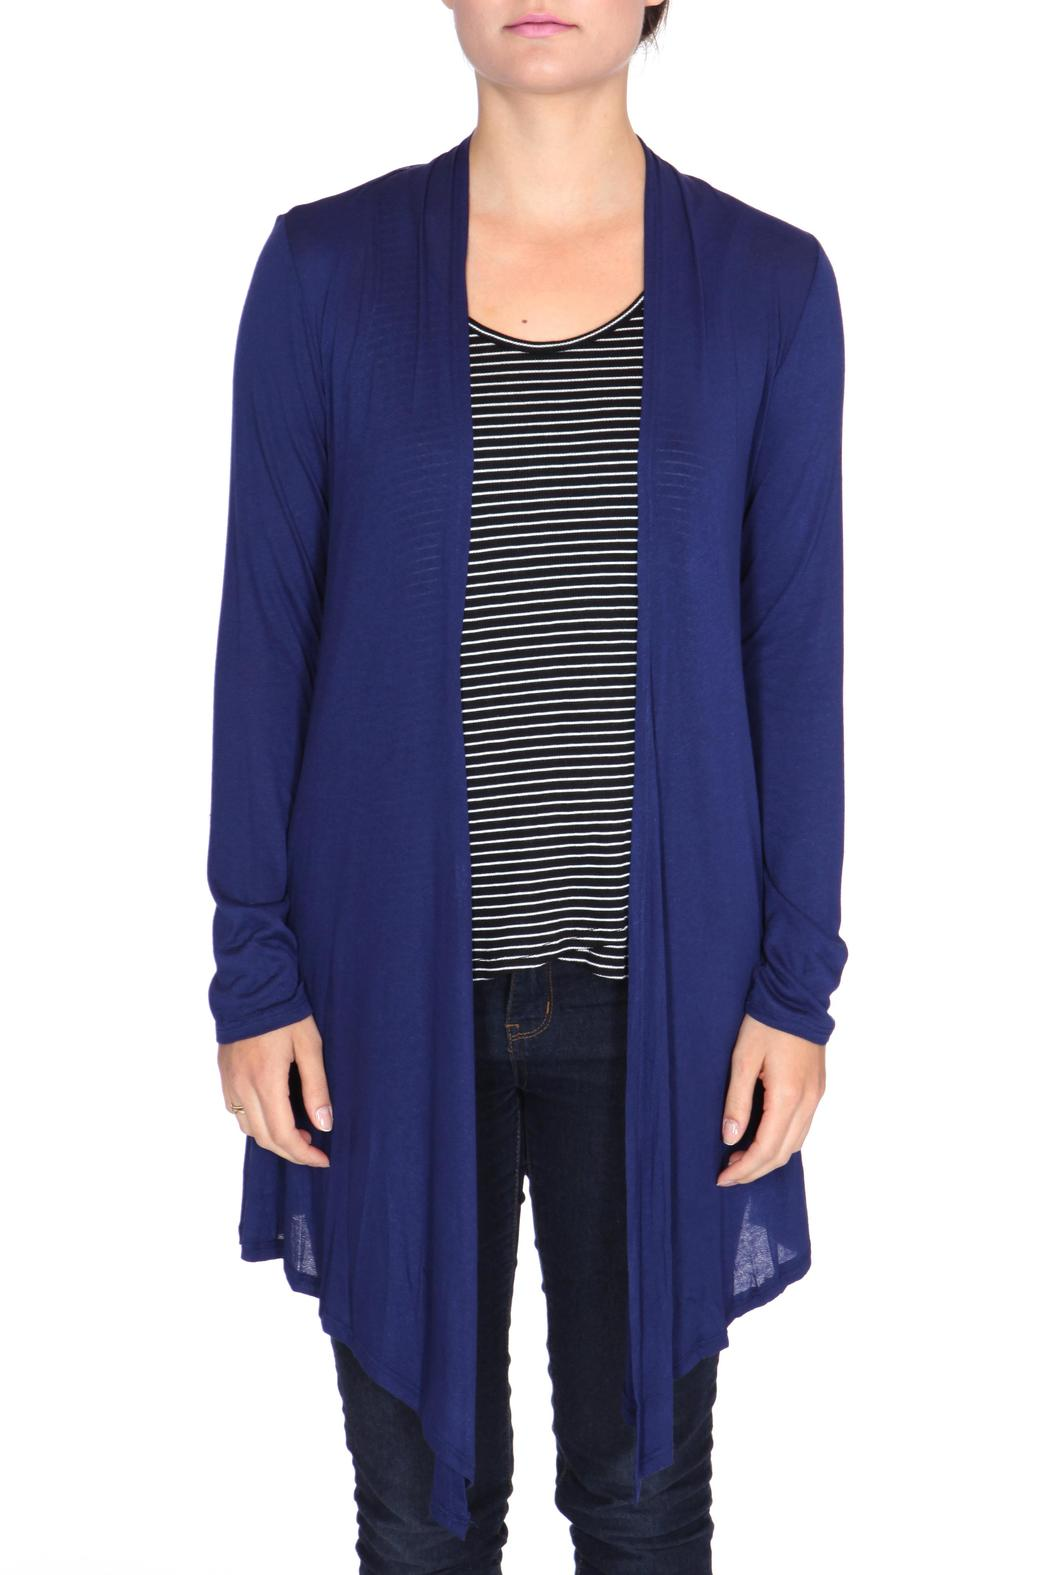 ShopGoldies Lightweight Spring Cardigan - Front Full Image